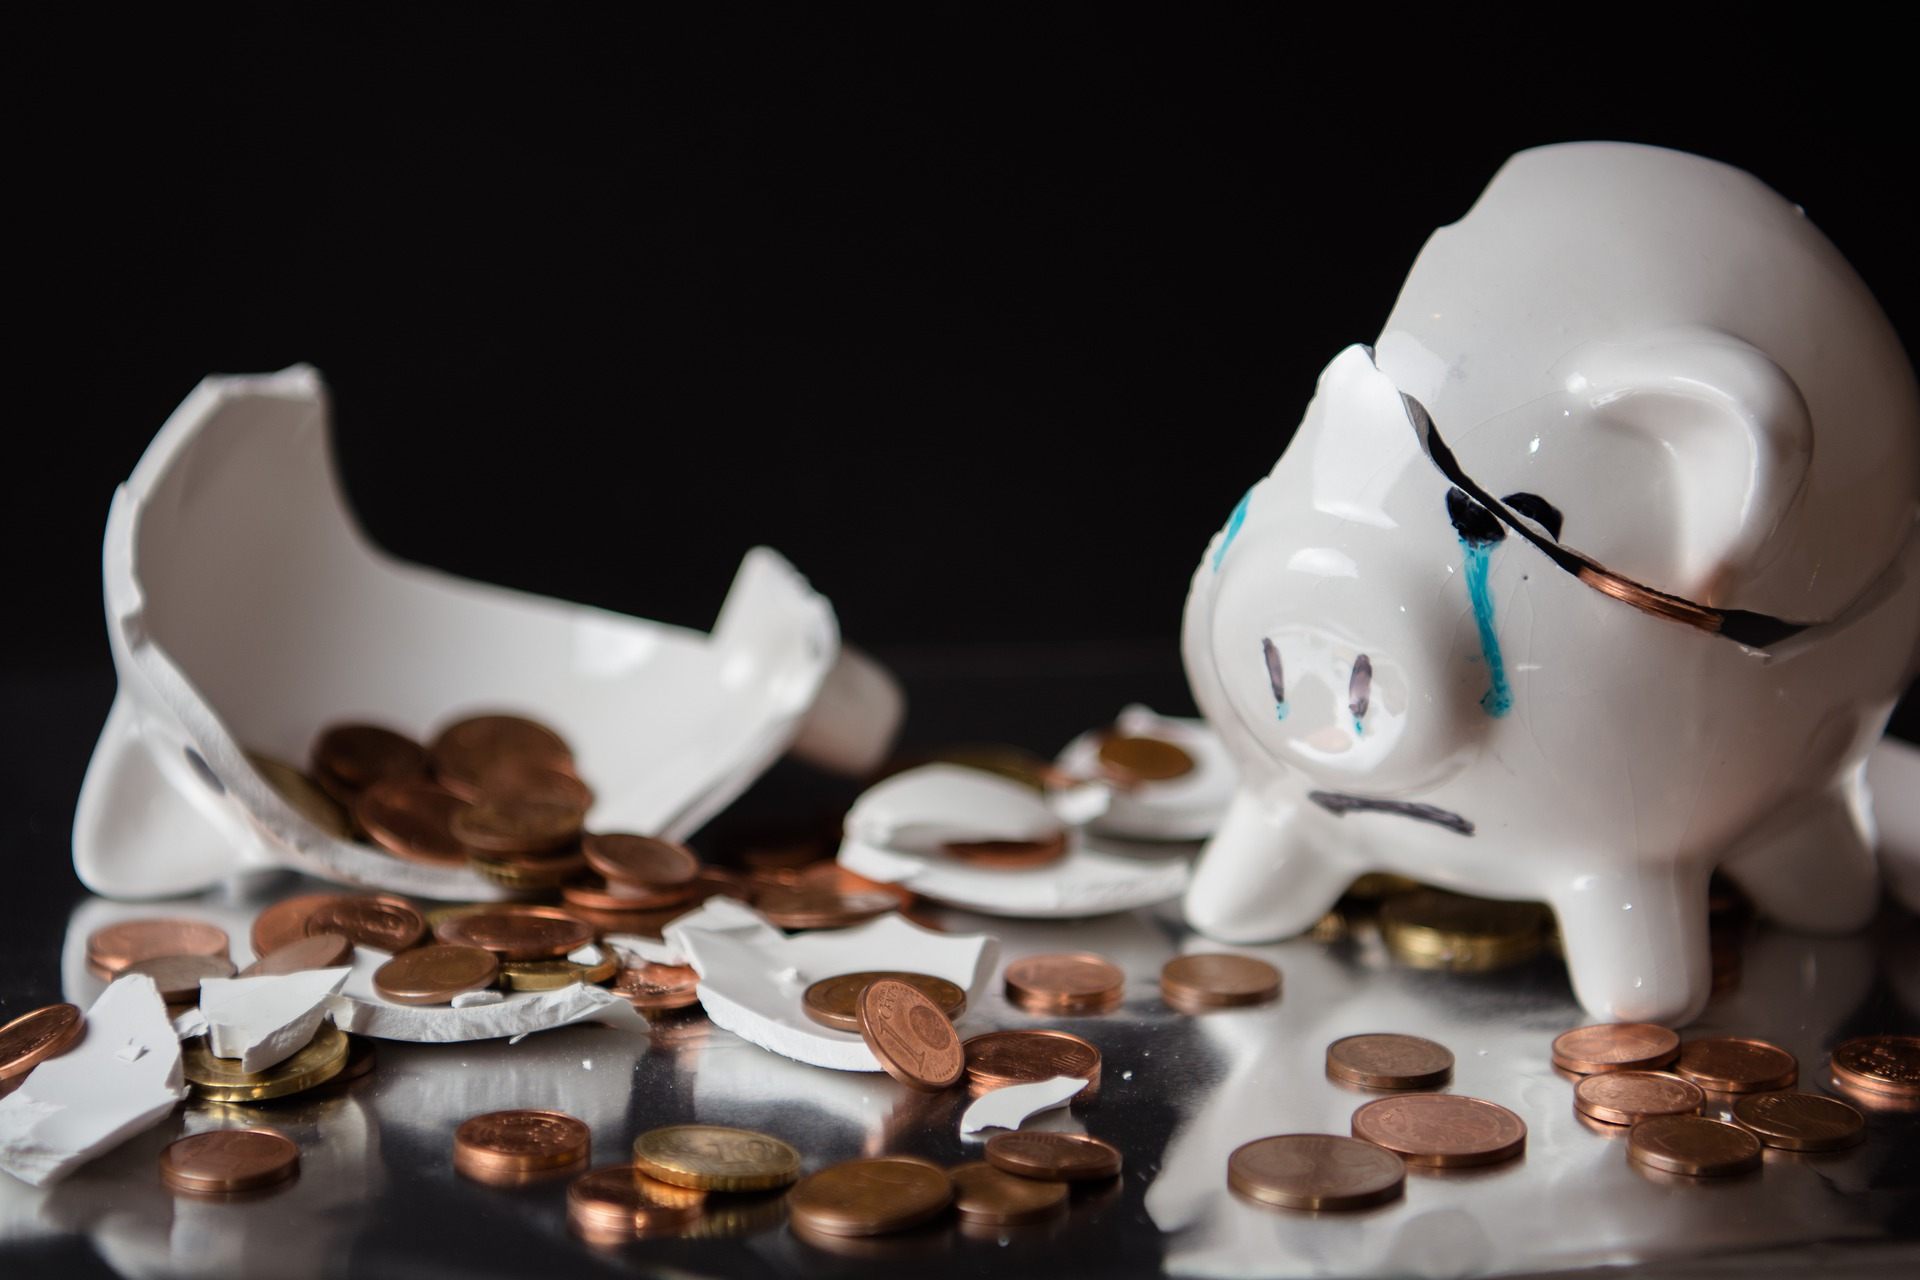 Broken-piggy-bank.jpg